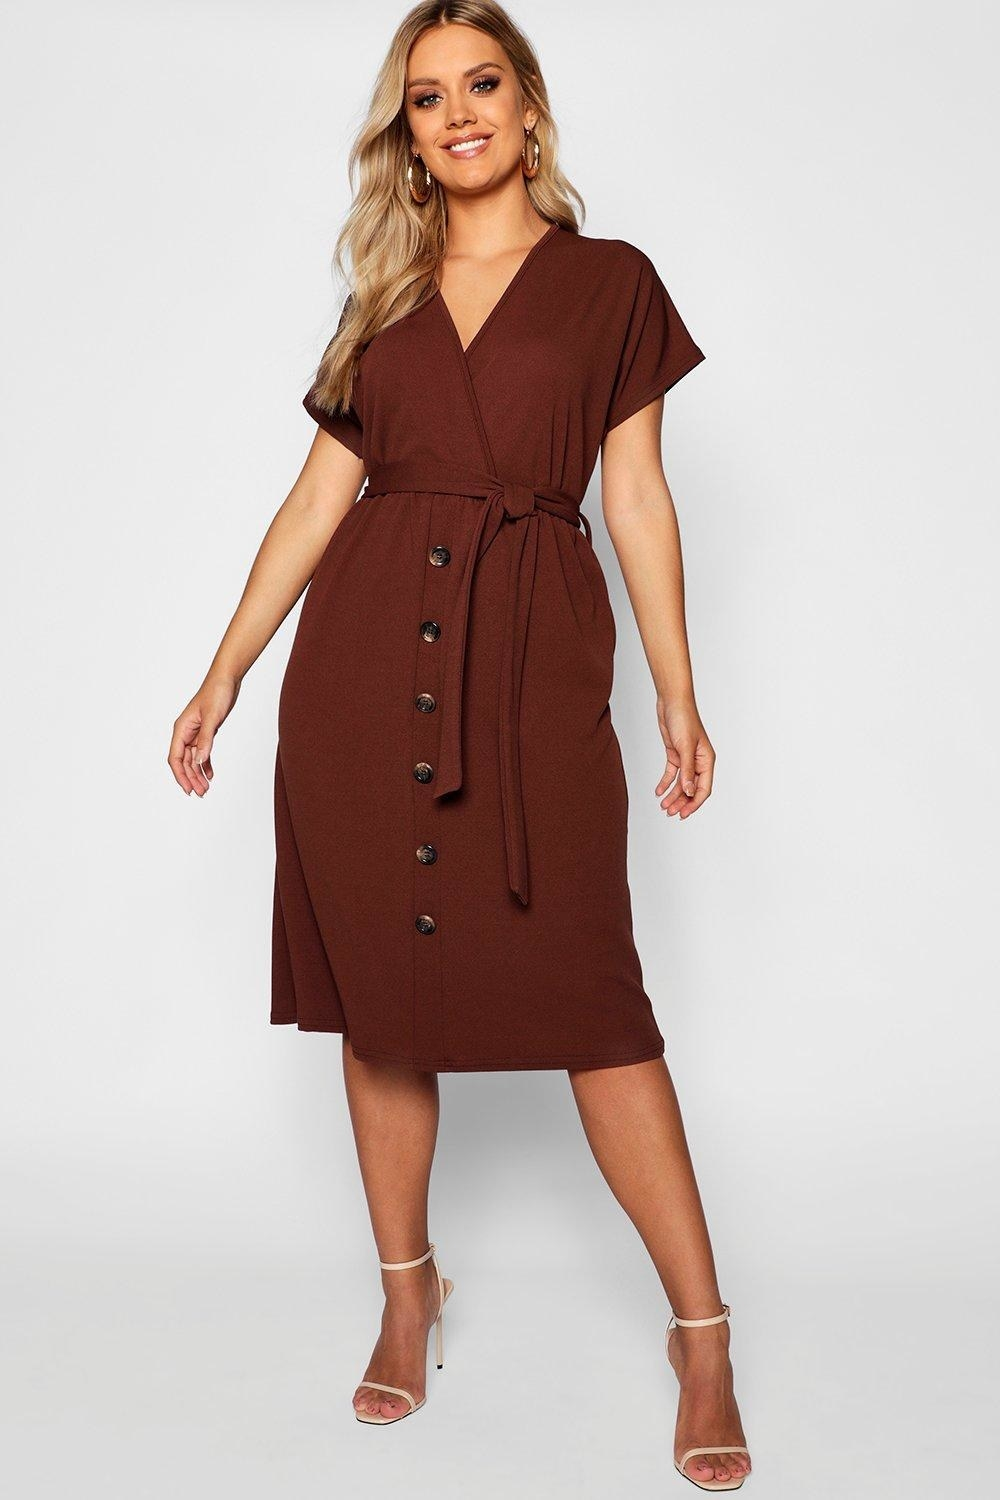 belted midi dress with buttons